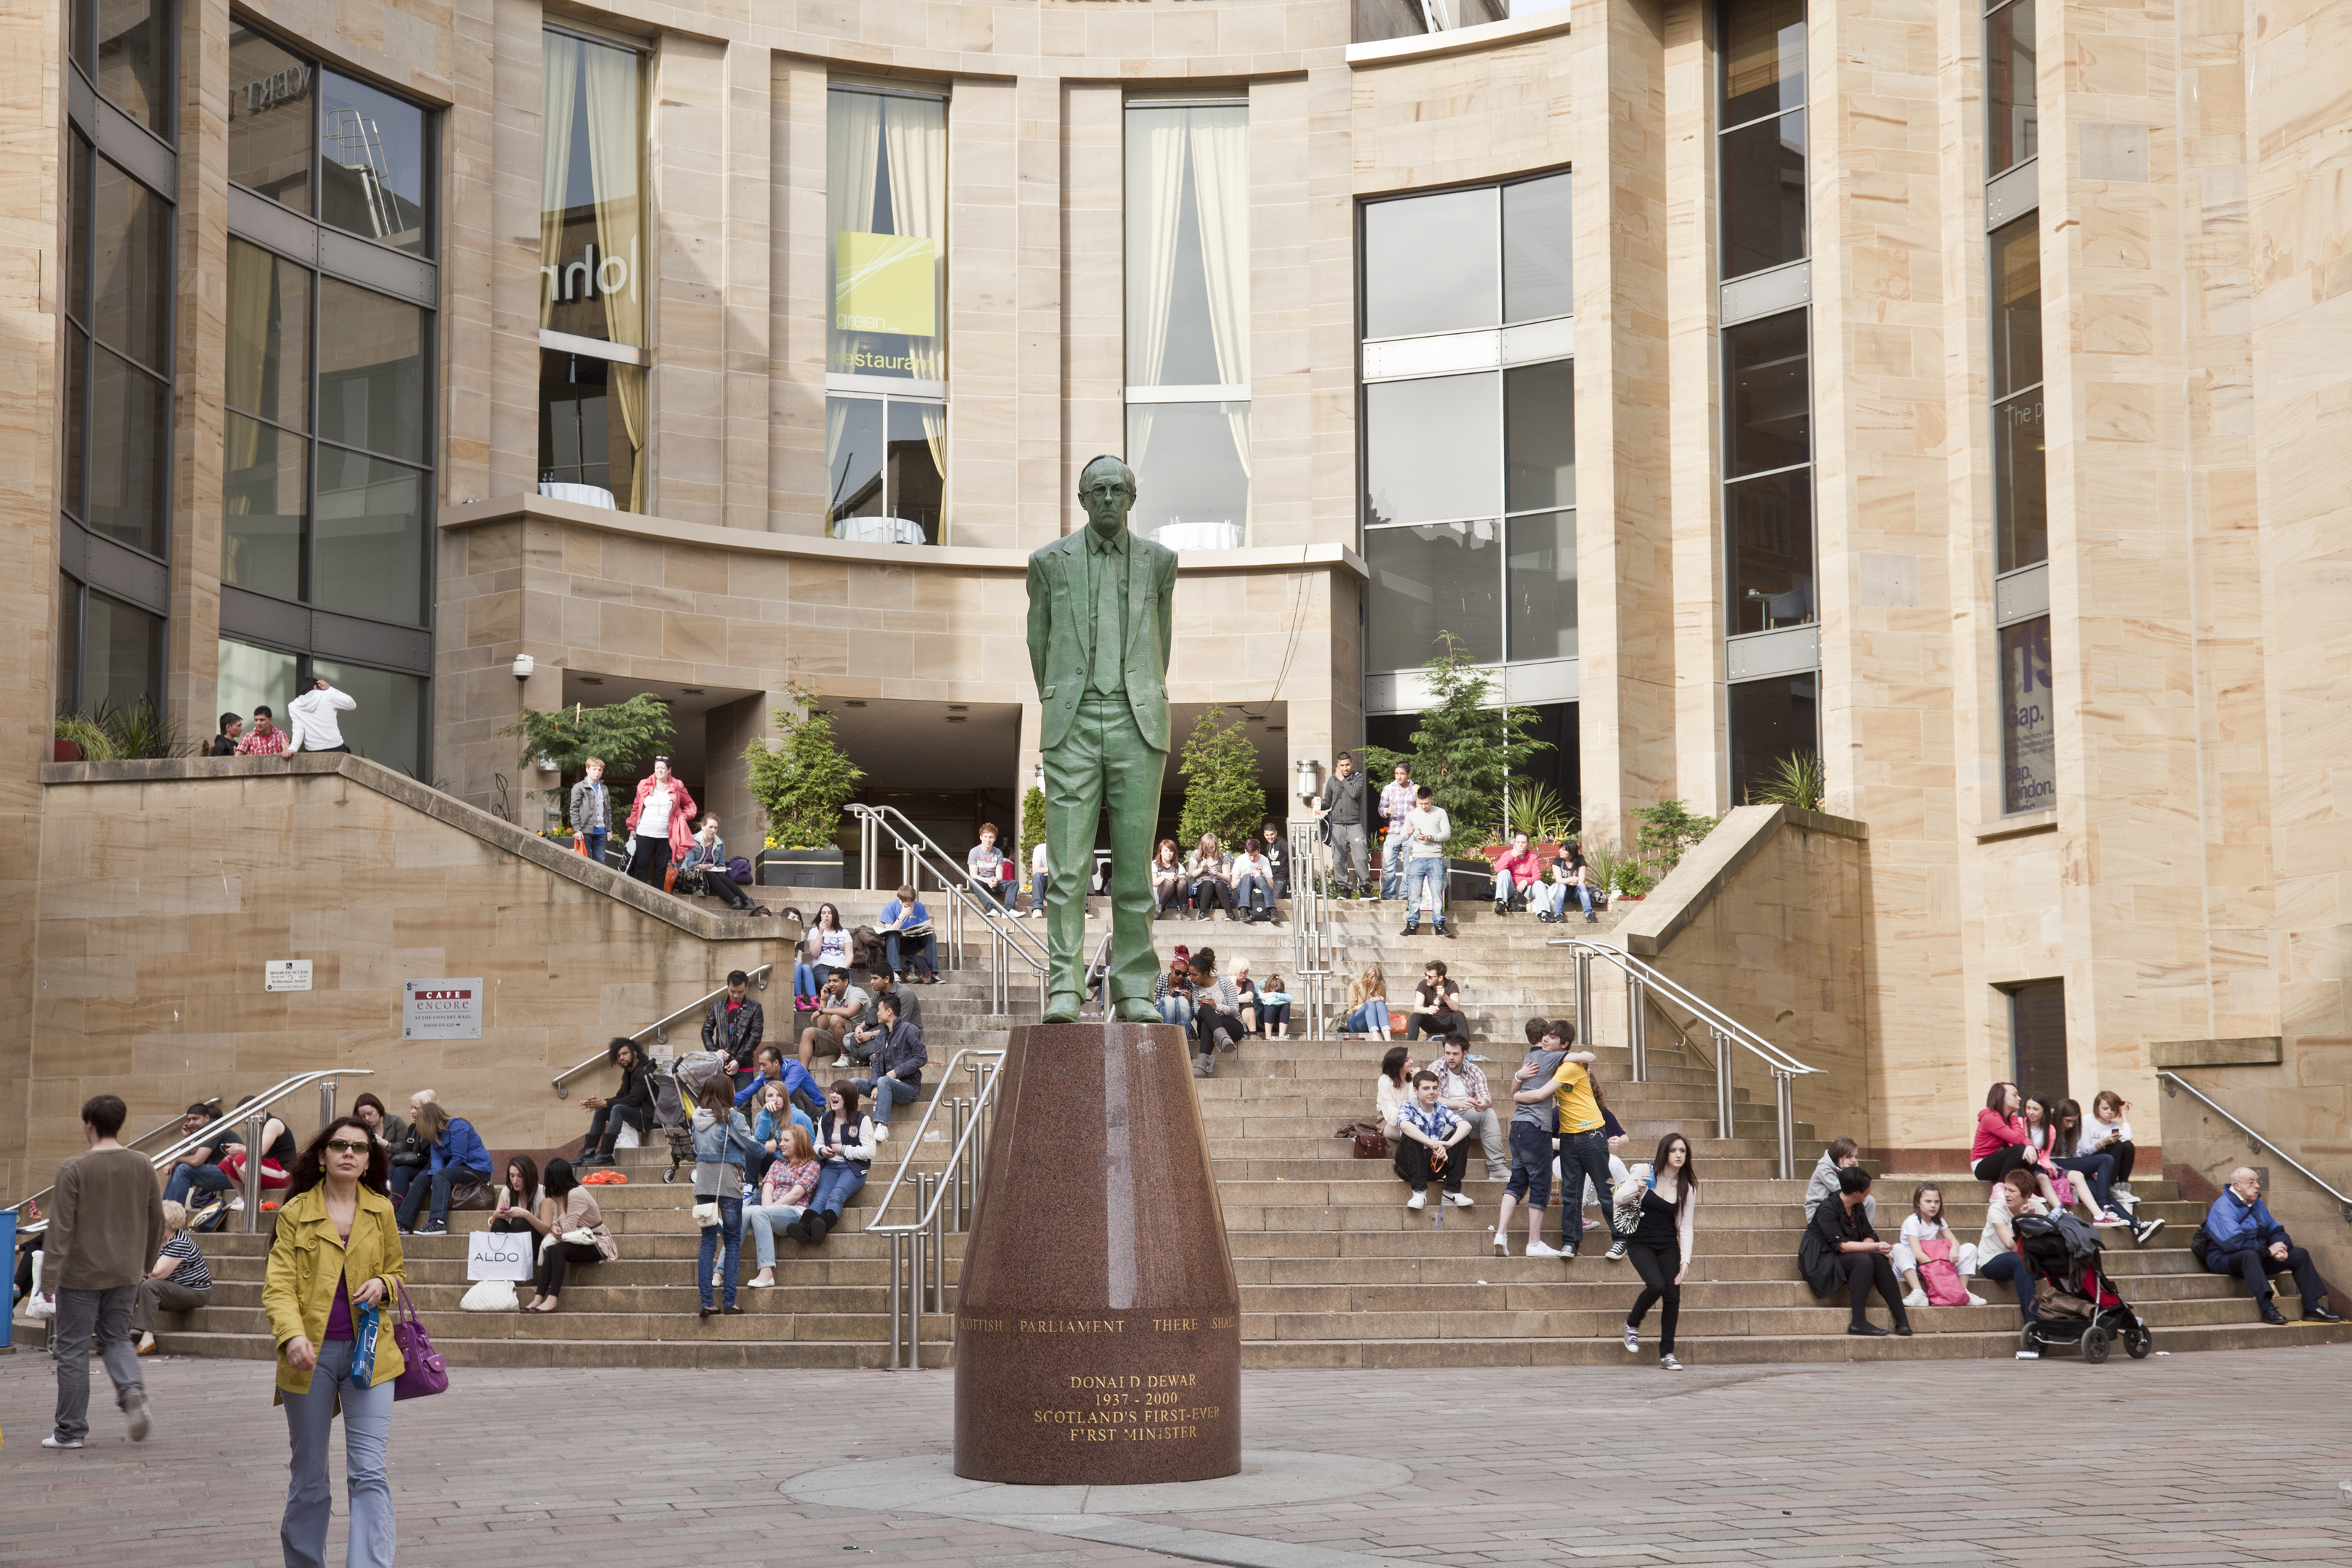 The Glasgow Royal Concert Hall (Getty Images/iStock)